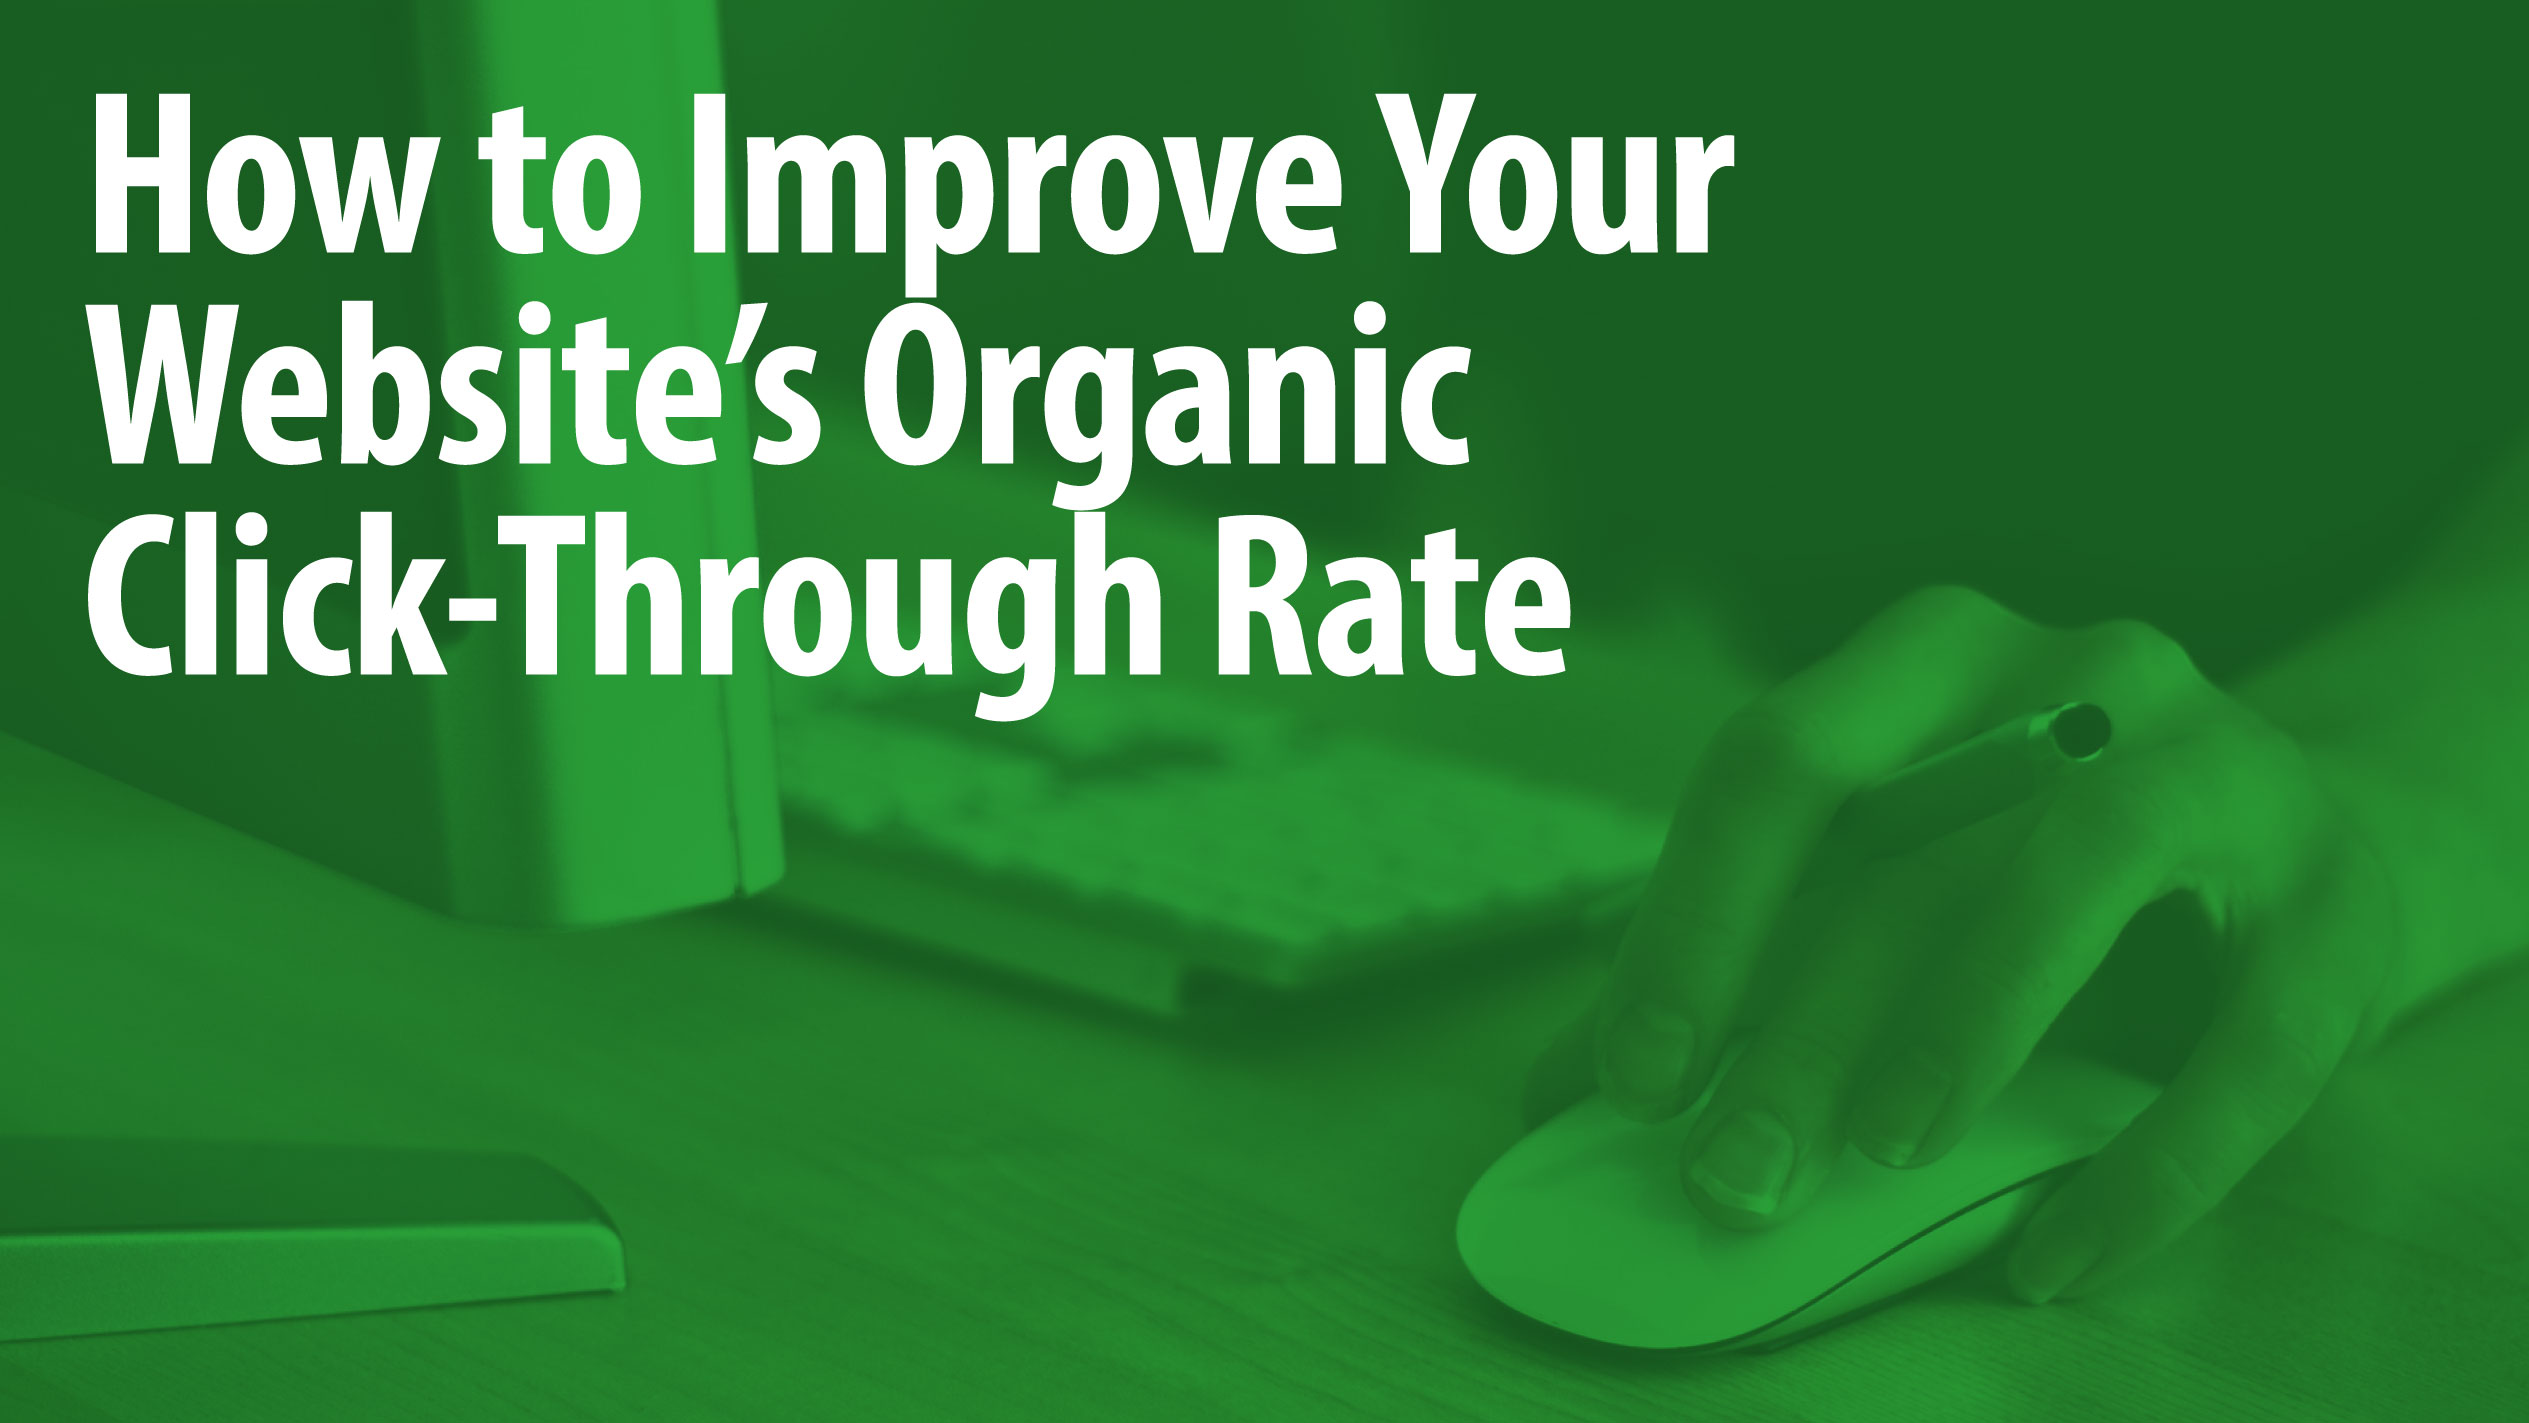 How to Improve Your Website's Organic Click-Through Rate